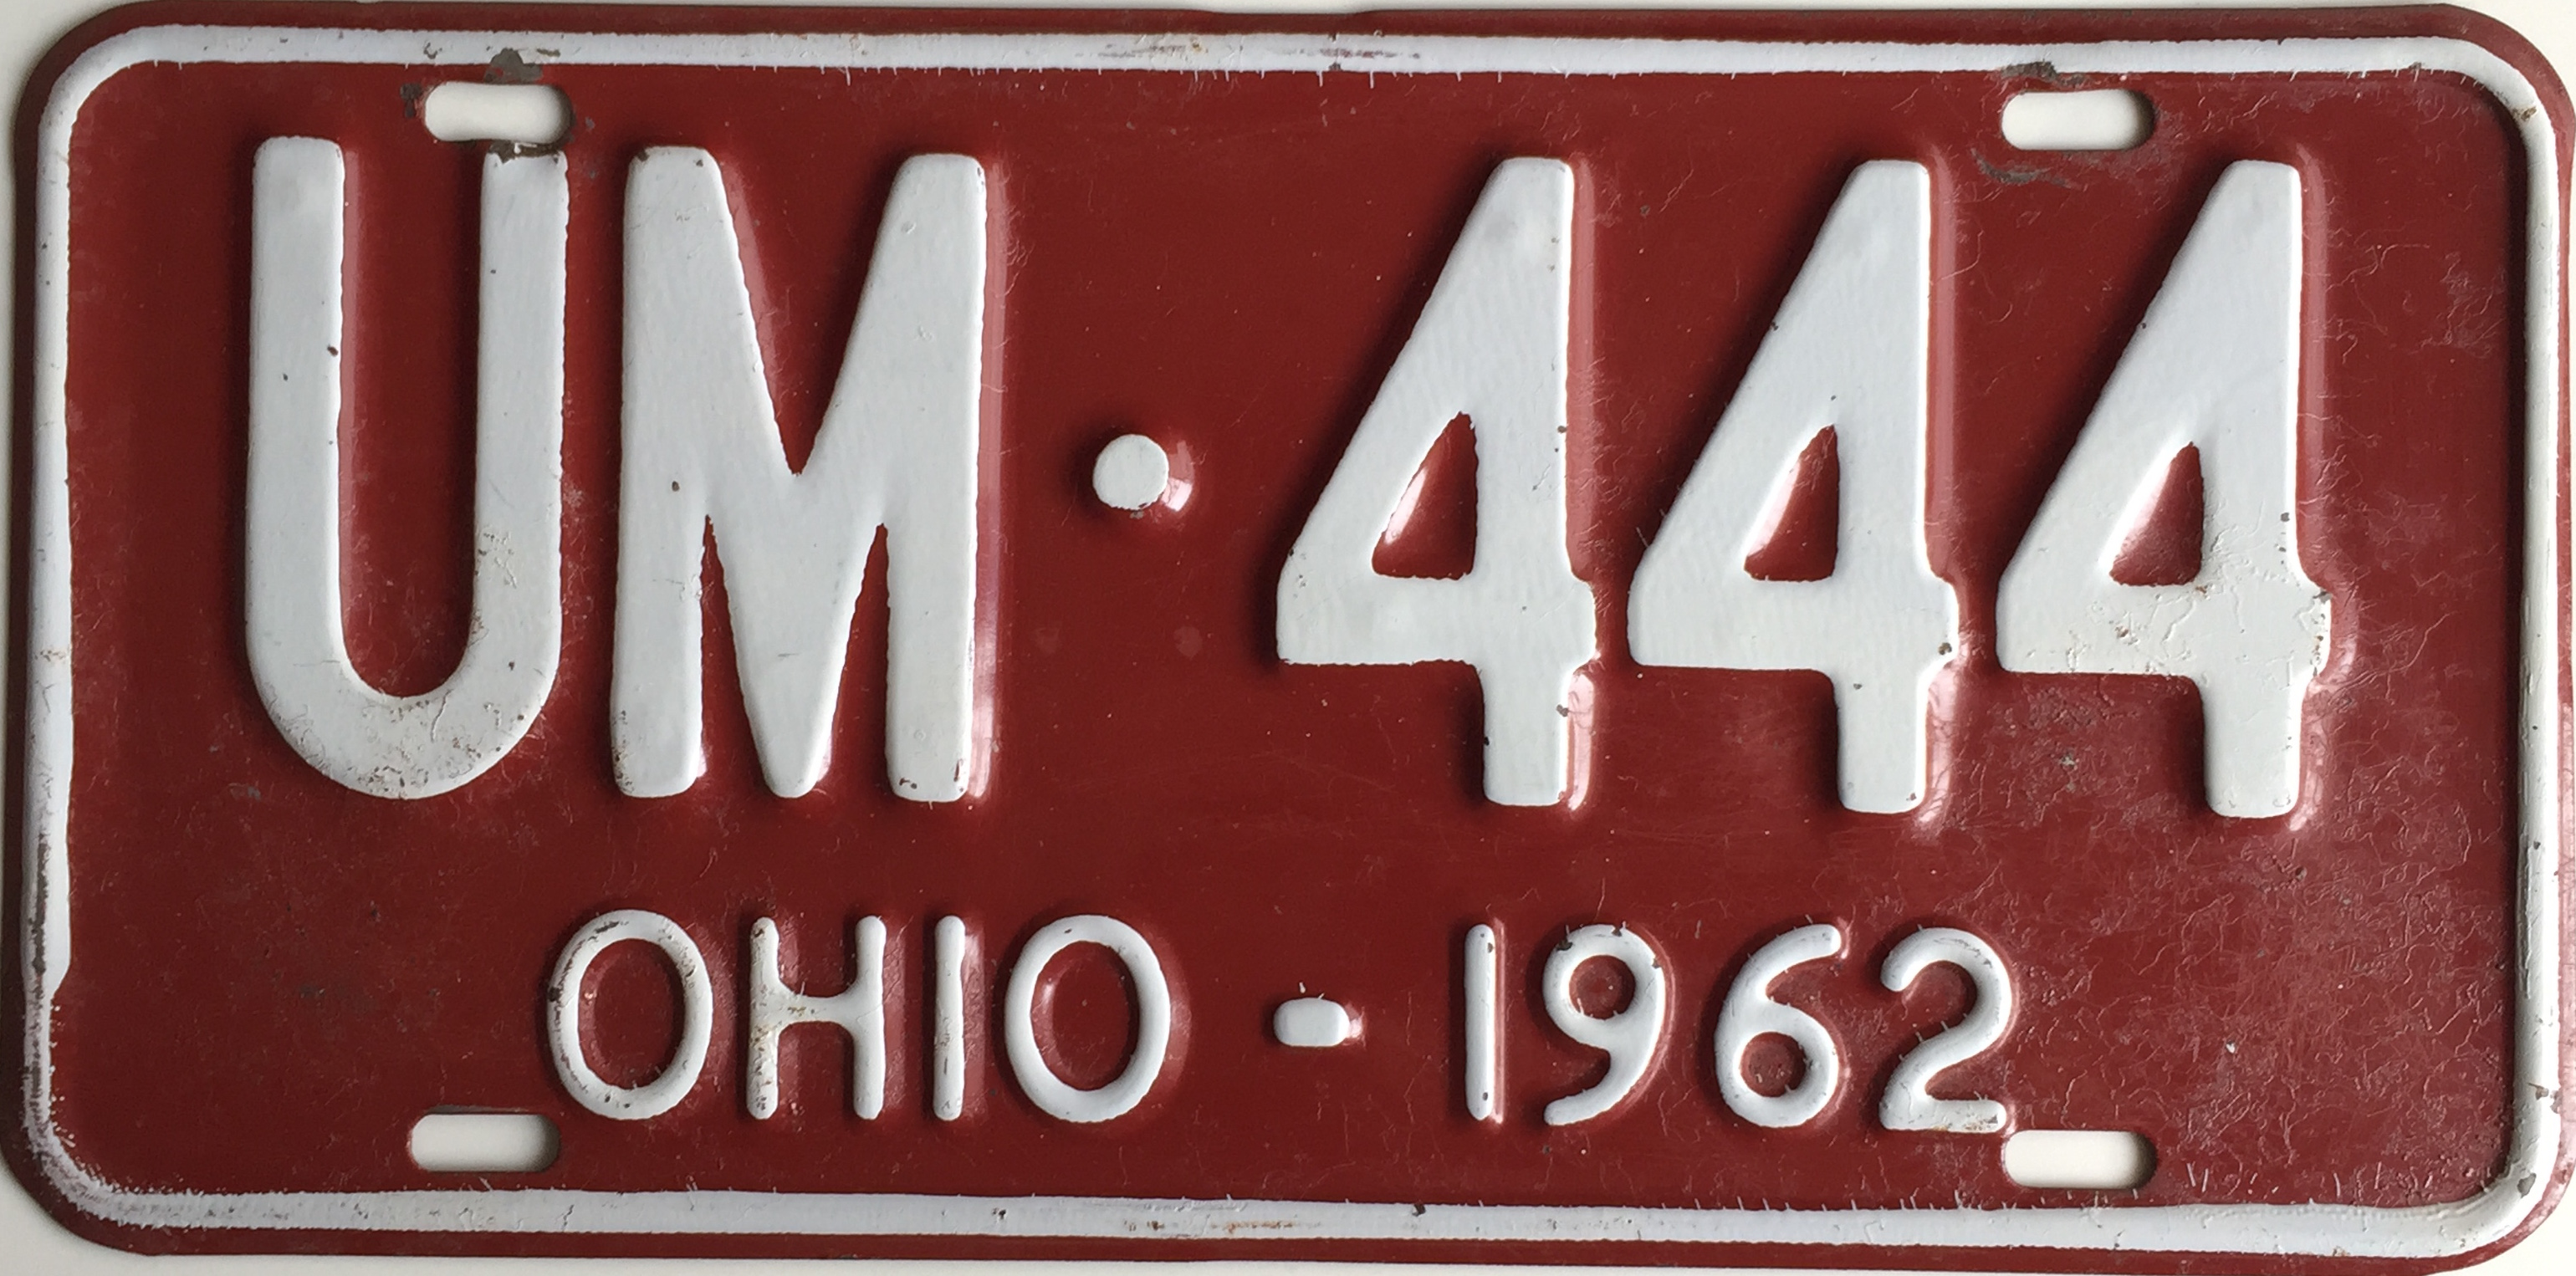 File:1962 Ohio license plate.JPG - Wikimedia Commons